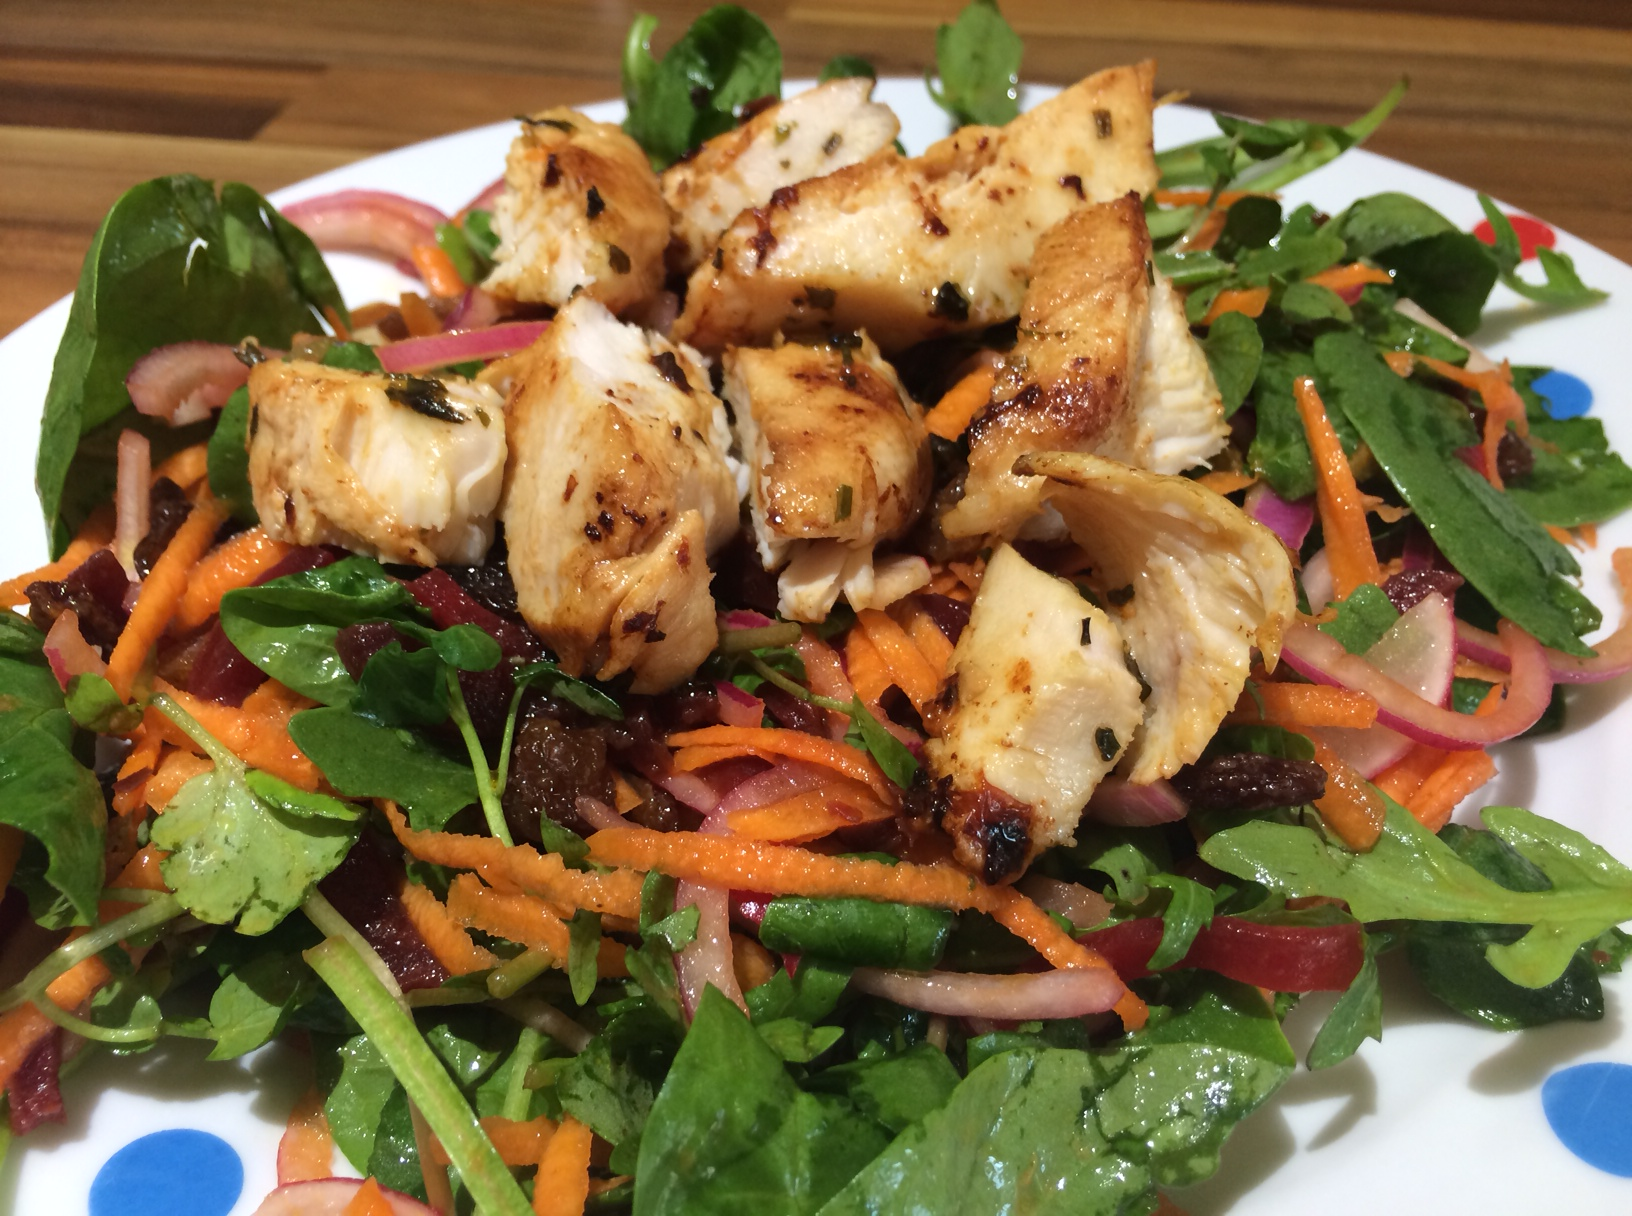 Beetroot & carrot salad with shredded chicken